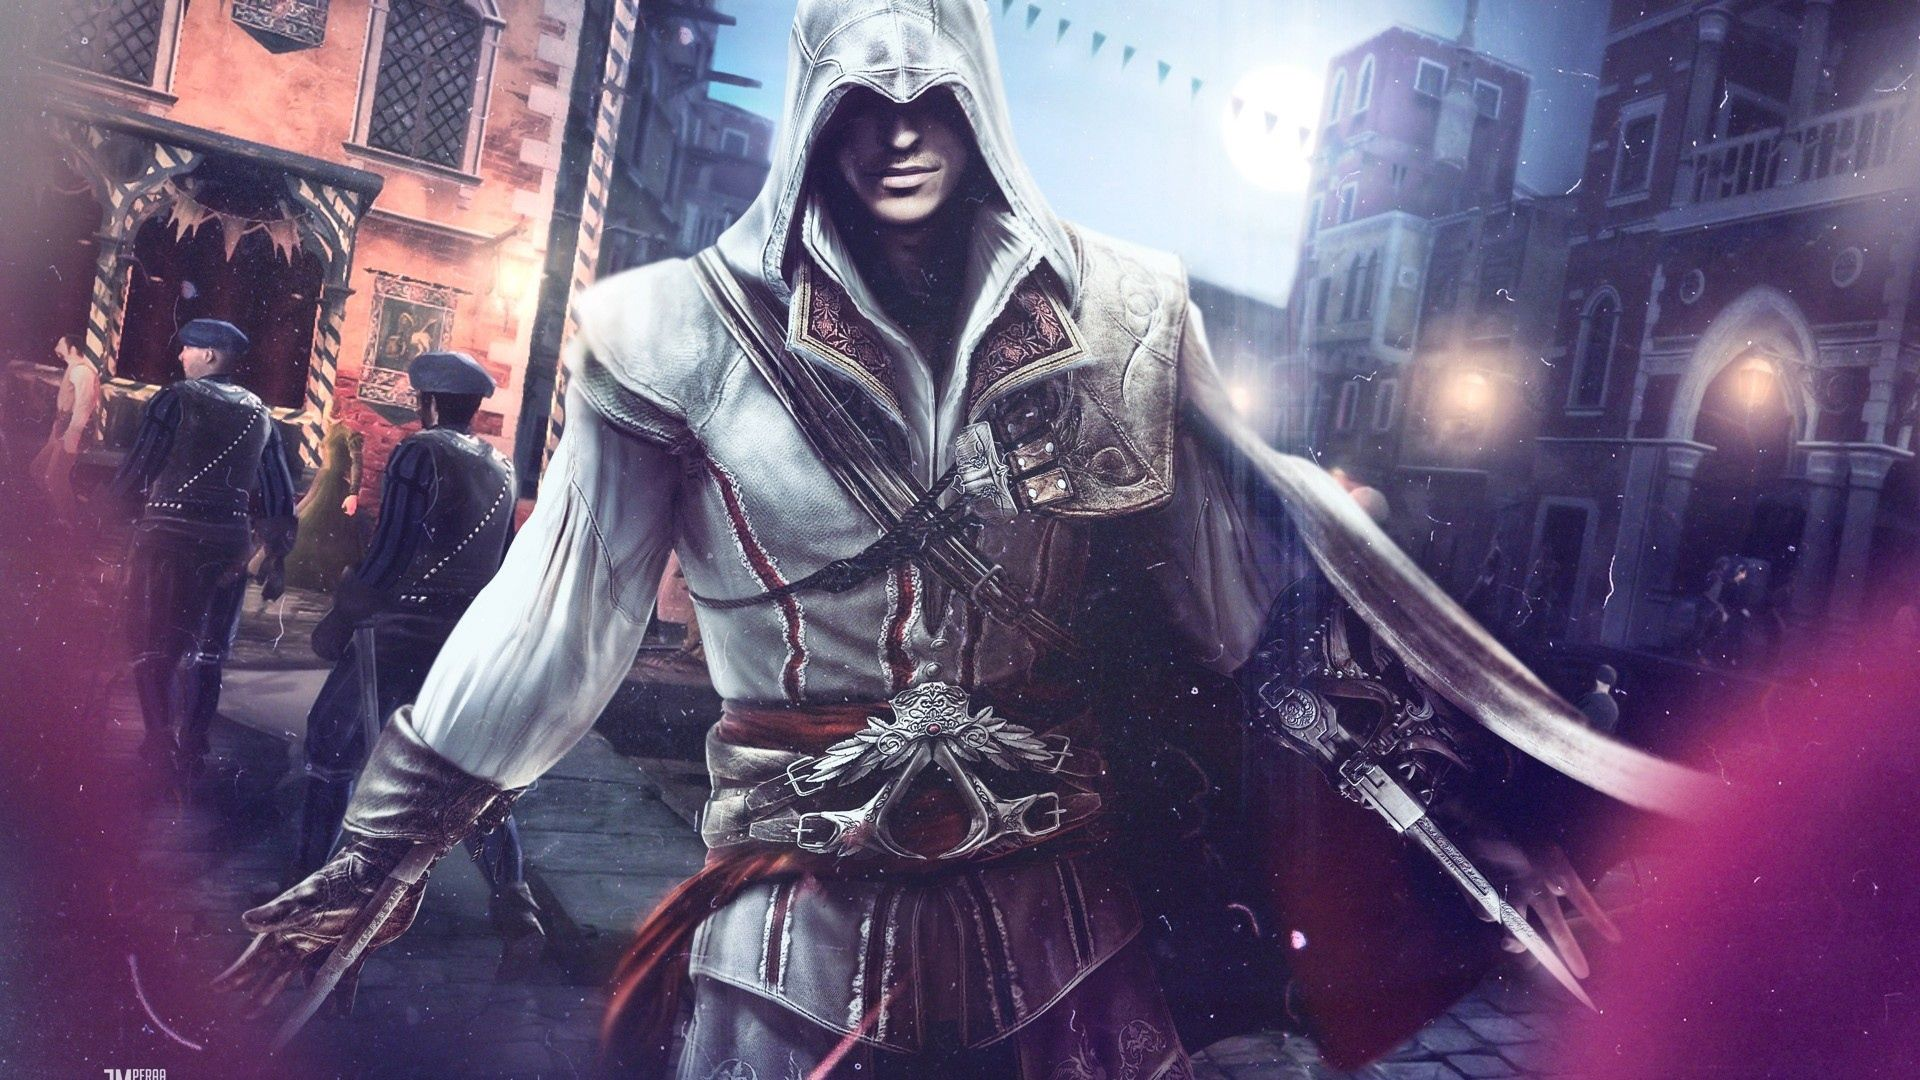 1920x1080 Wallpaper assassins creed 2, desmond miles